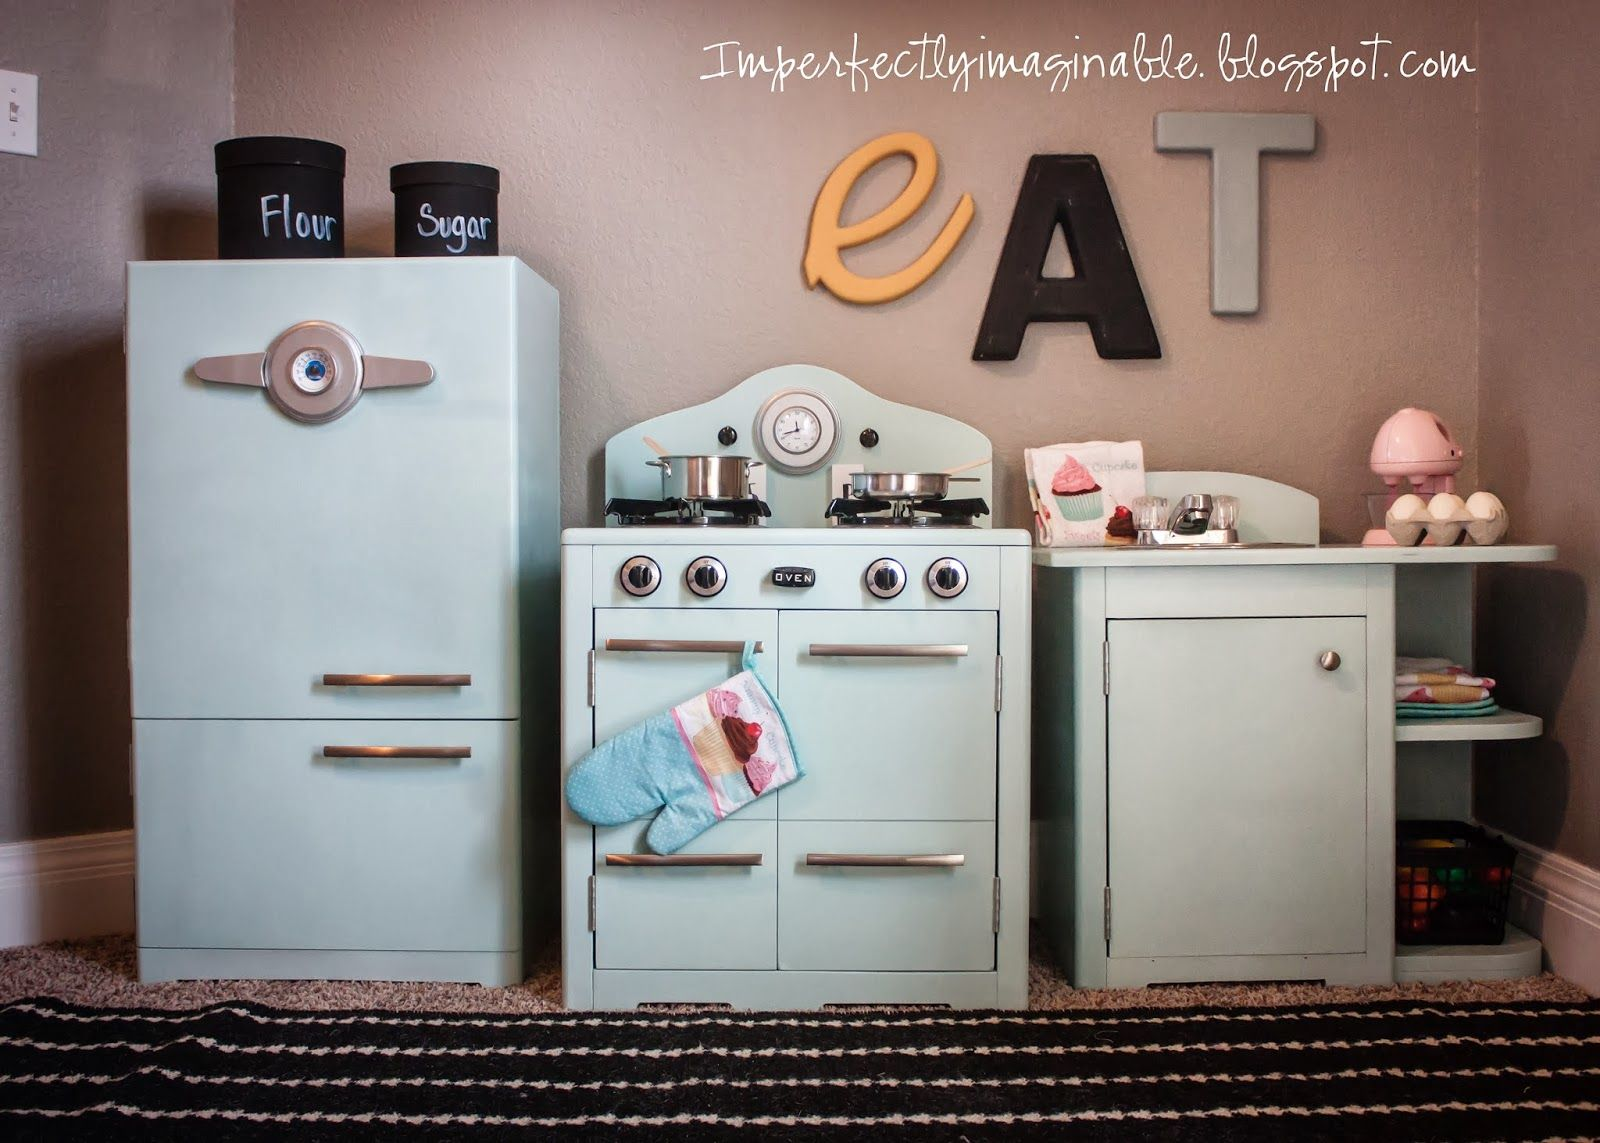 Imperfectly imaginable pottery barn inspired retro kids kitchen